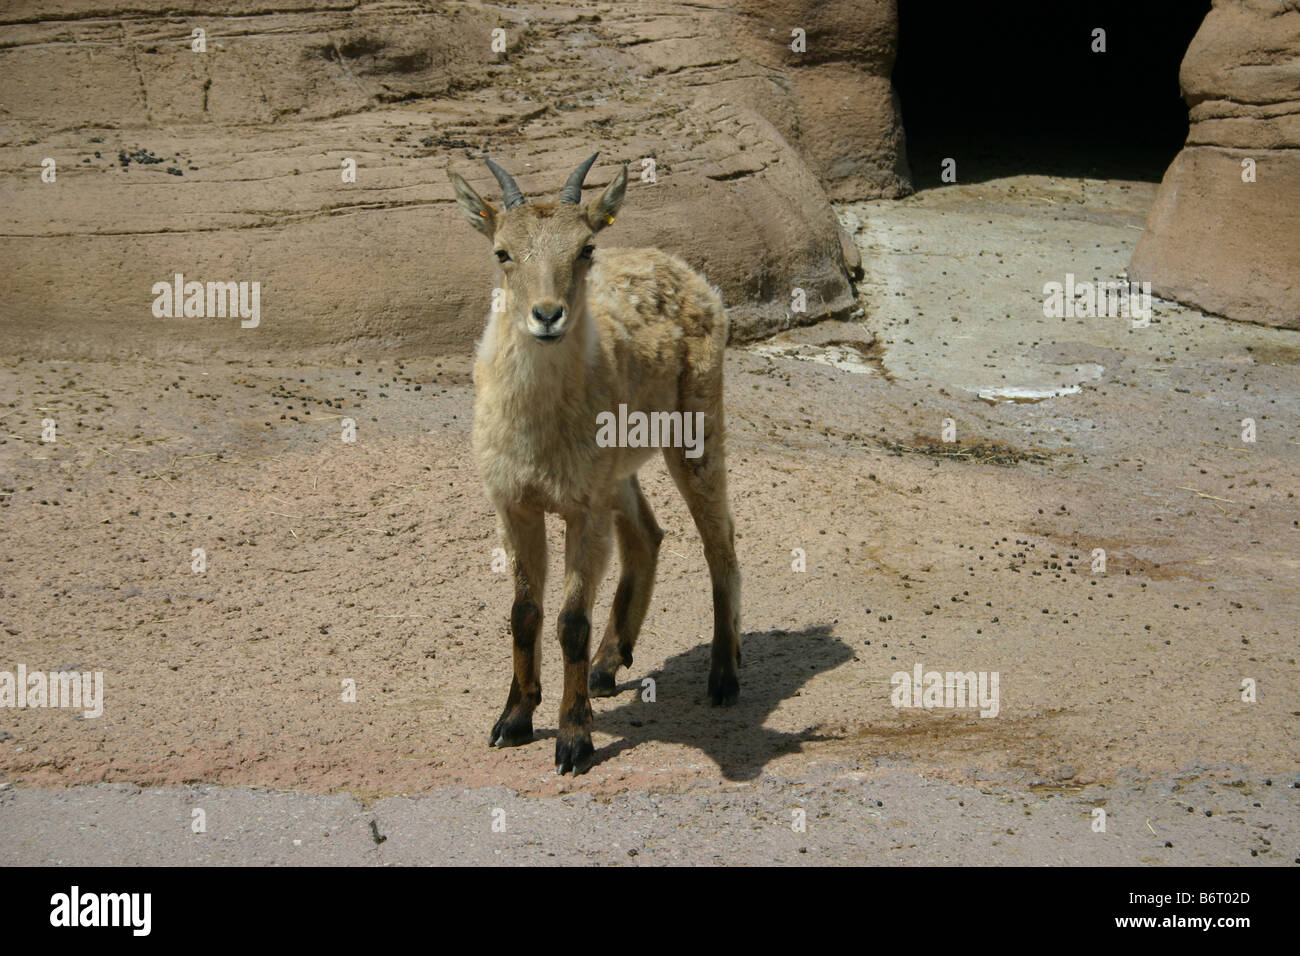 A young west caucasus tur kid, a breed of goat-antelope native to central Asia, Stock Photo